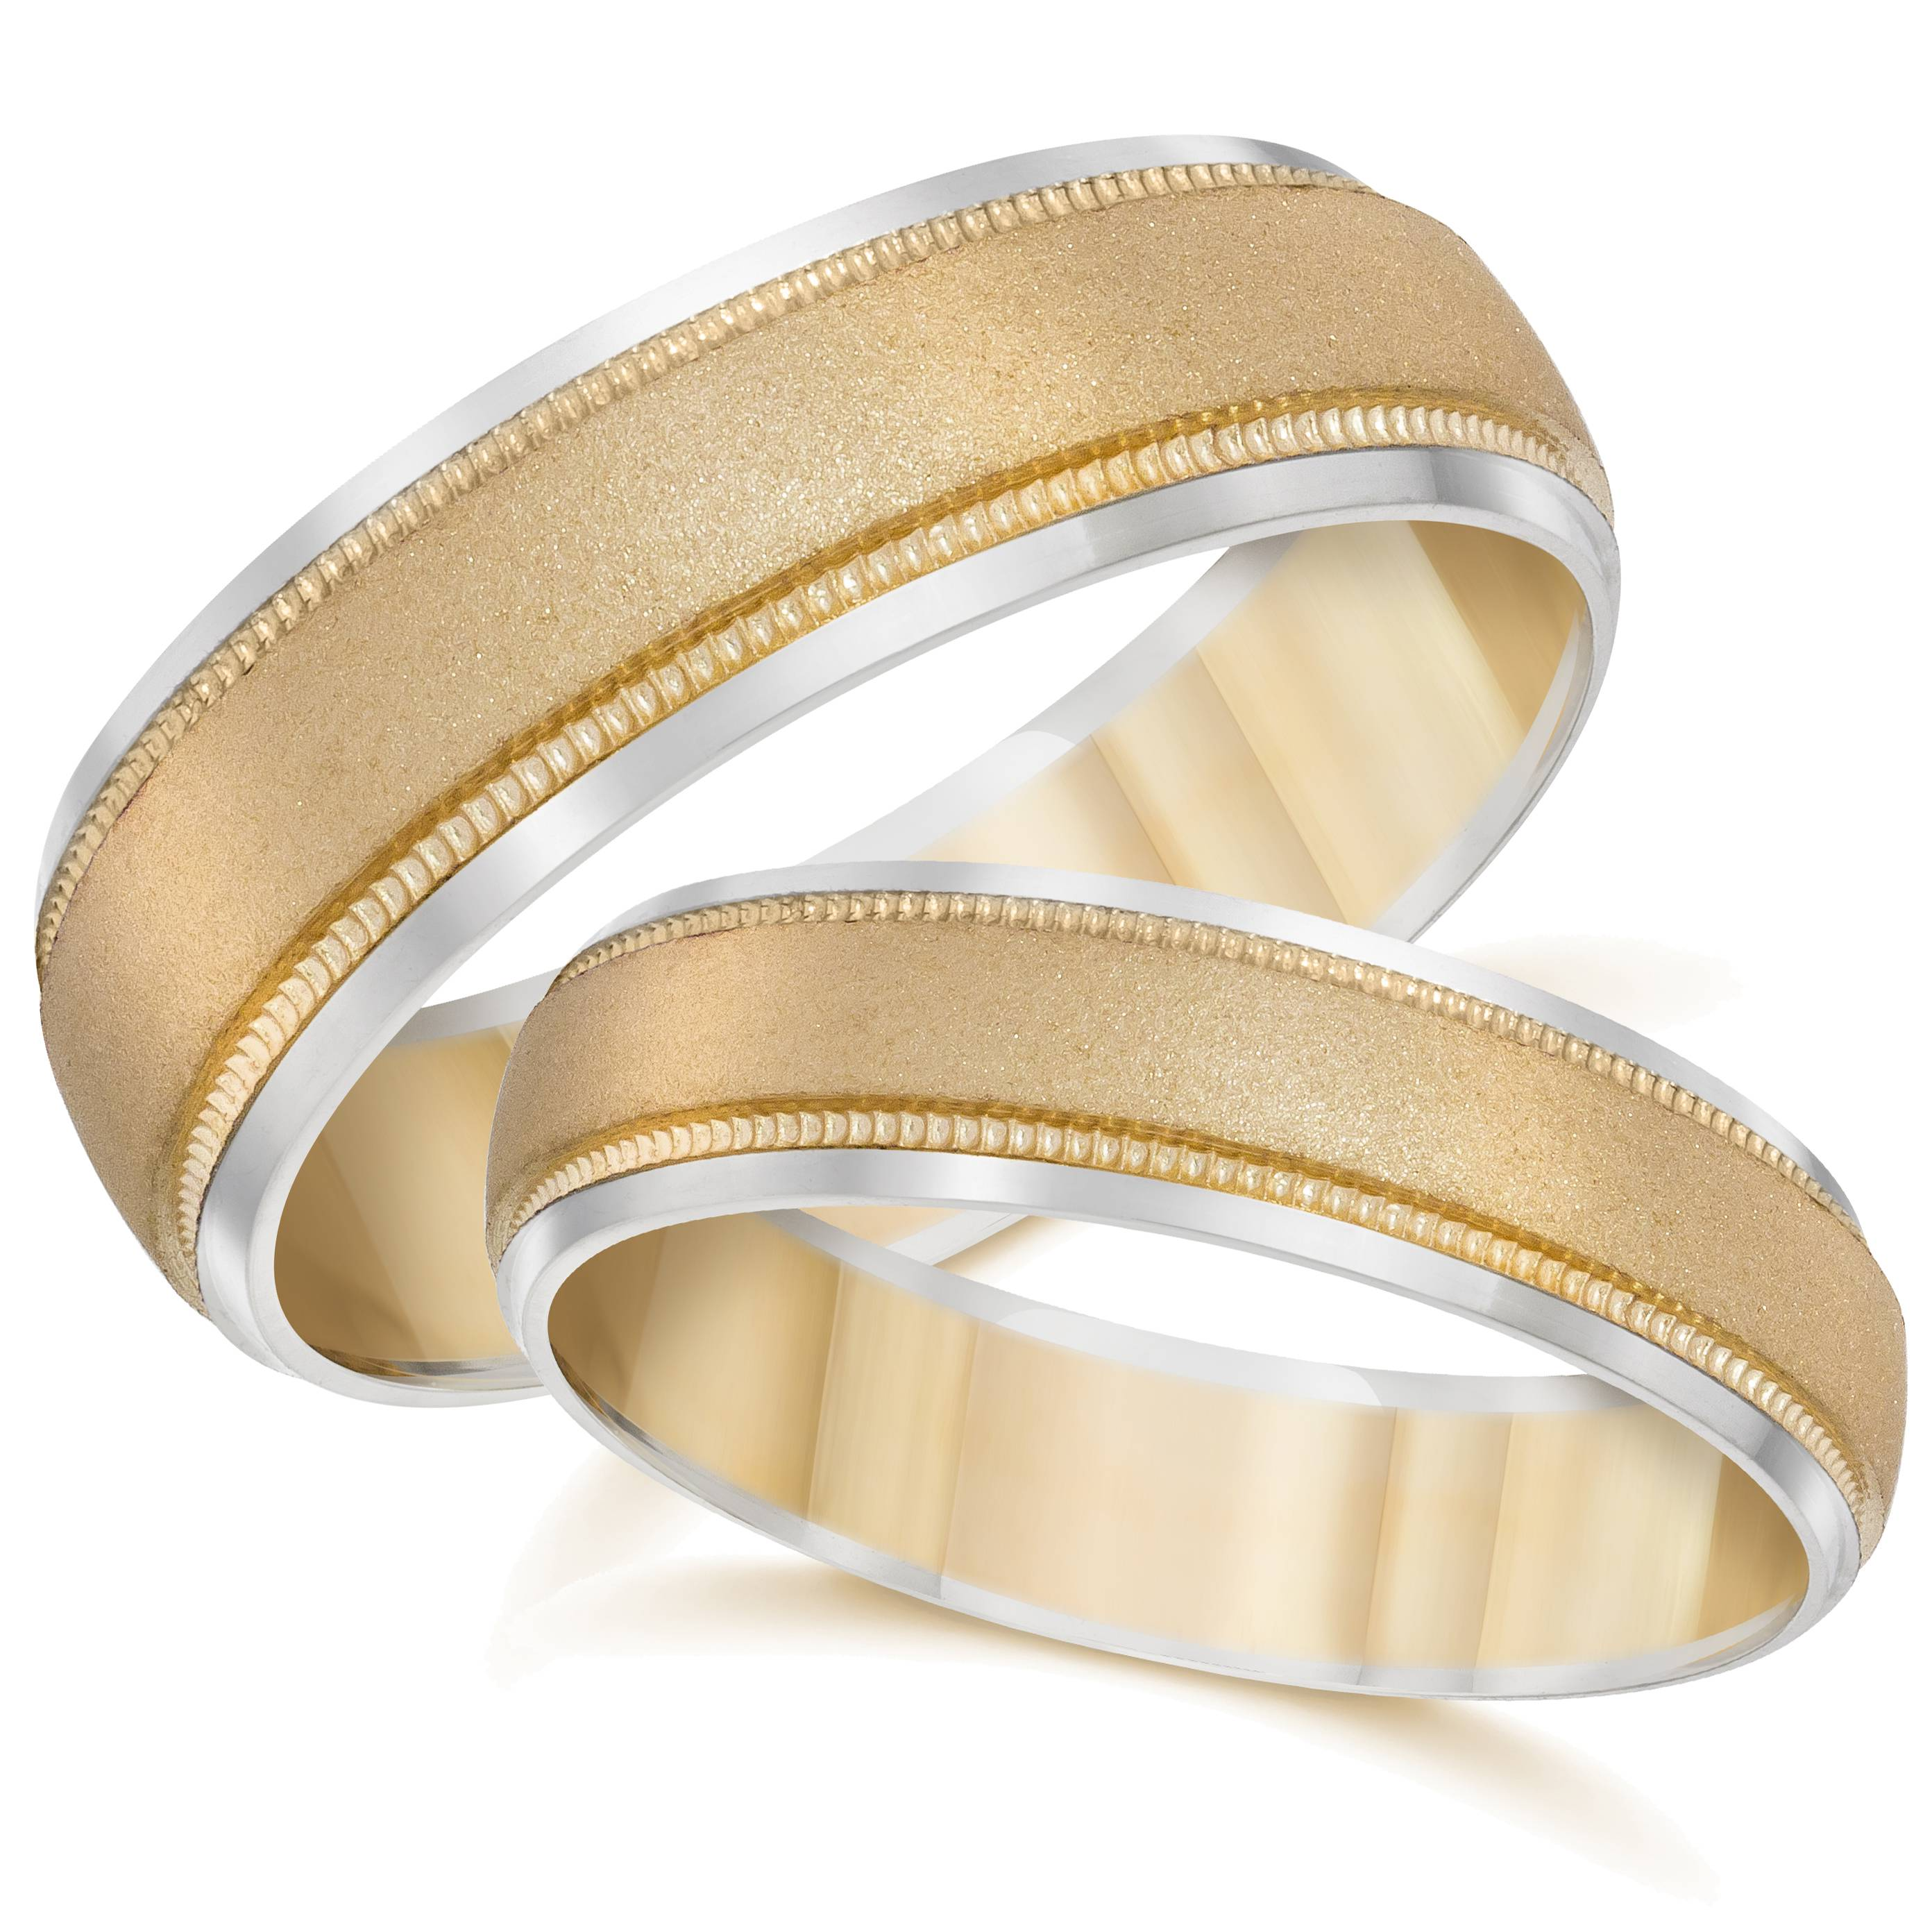 Gold Matching His Hers Two Tone Wedding Band Ring Set  Ebay. Bead Earrings. Nixon Time Teller Watches. Youtube Beads10k Gold Bracelet. Rectangular Watches. Kundalini Spirit Bracelet. Stone Rings. Micro Pave Wedding Band. Chunky Watches